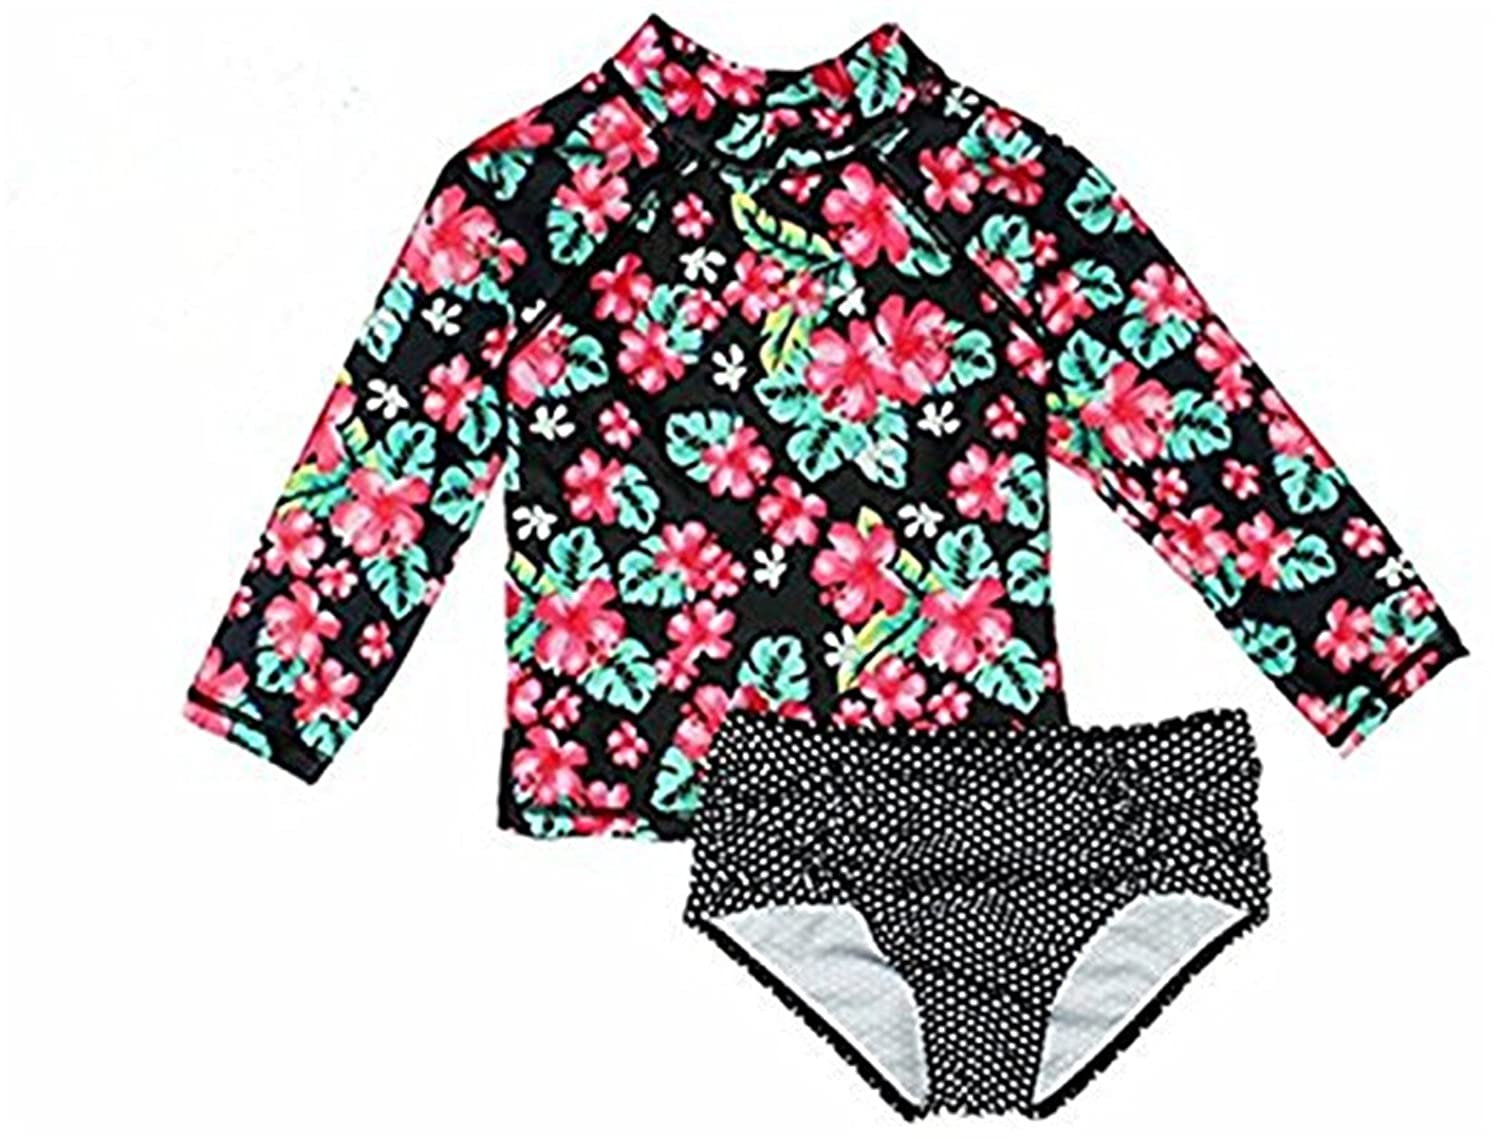 Baby Girls Kids Two Pieces long-sleeve Floral Print Rash Guard UPF 50+ UV Swimsuits